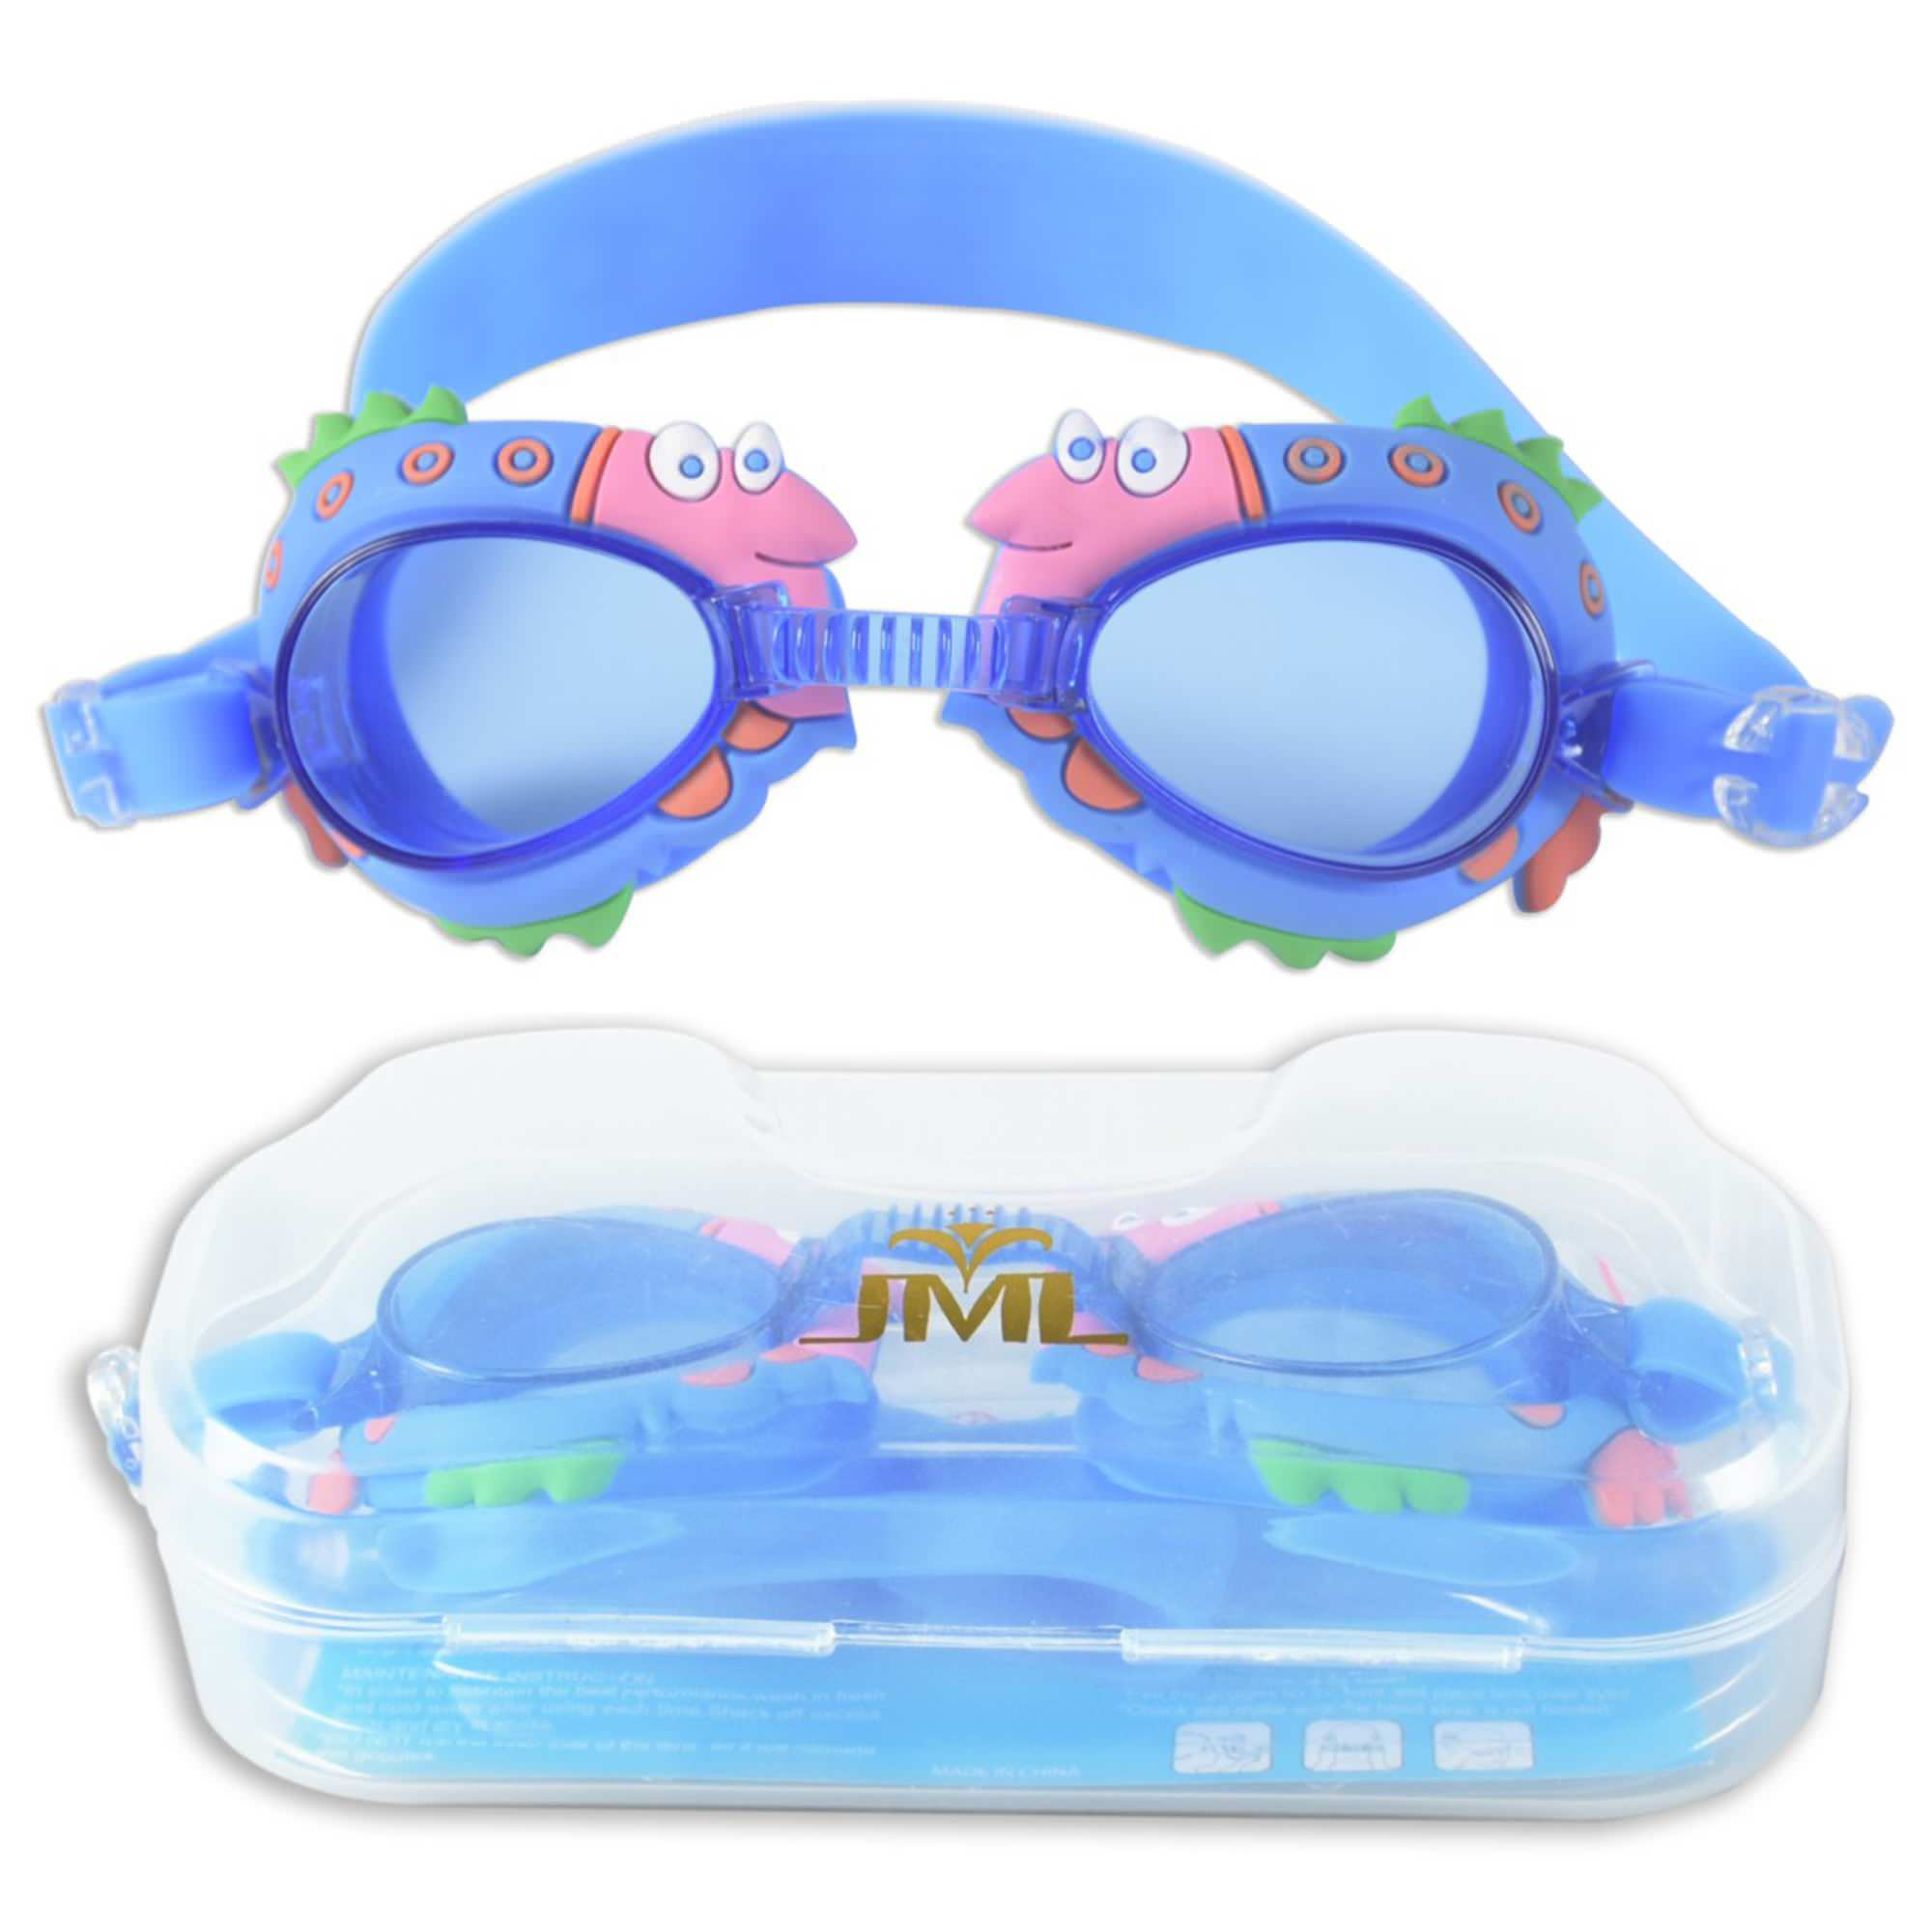 JML Kid Goggles, Cute Animal Design Swim Goggles Soft Silicone, Anti-Fog, No Leaking, UV Protection Hypoallergenic... by JML